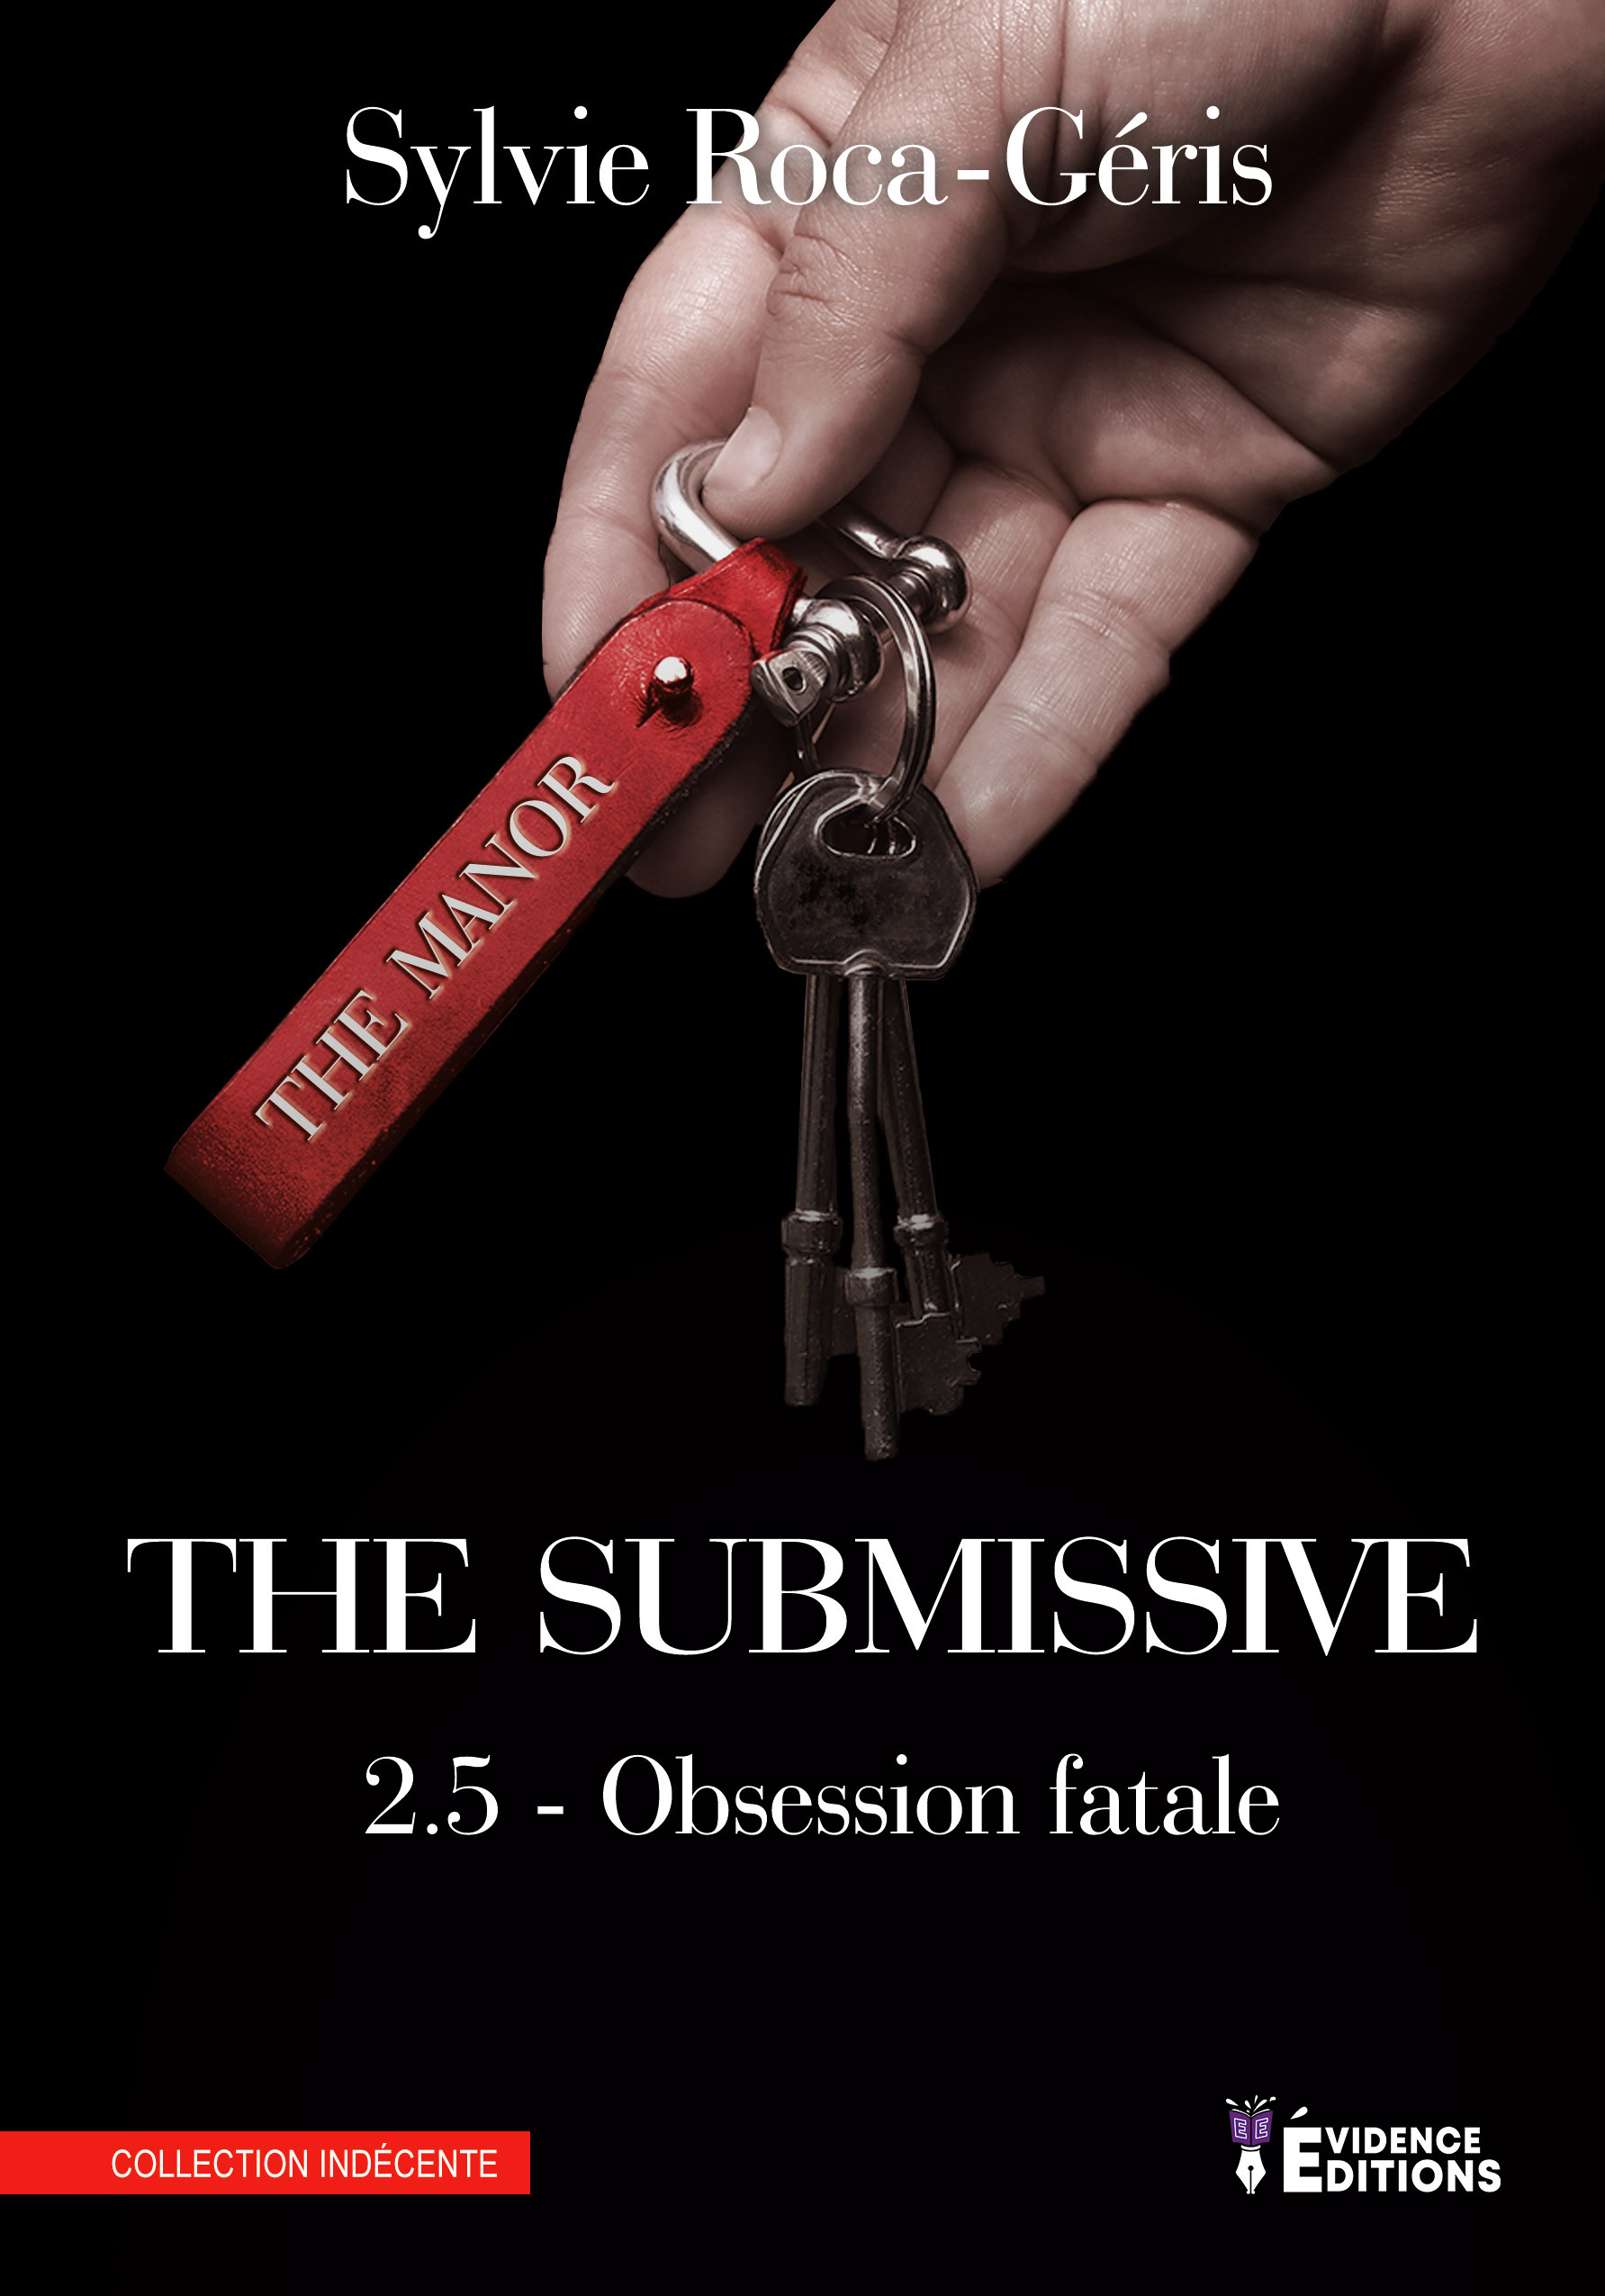 THE SUBMISSIVE 2.5 - OBSESSION FATALE